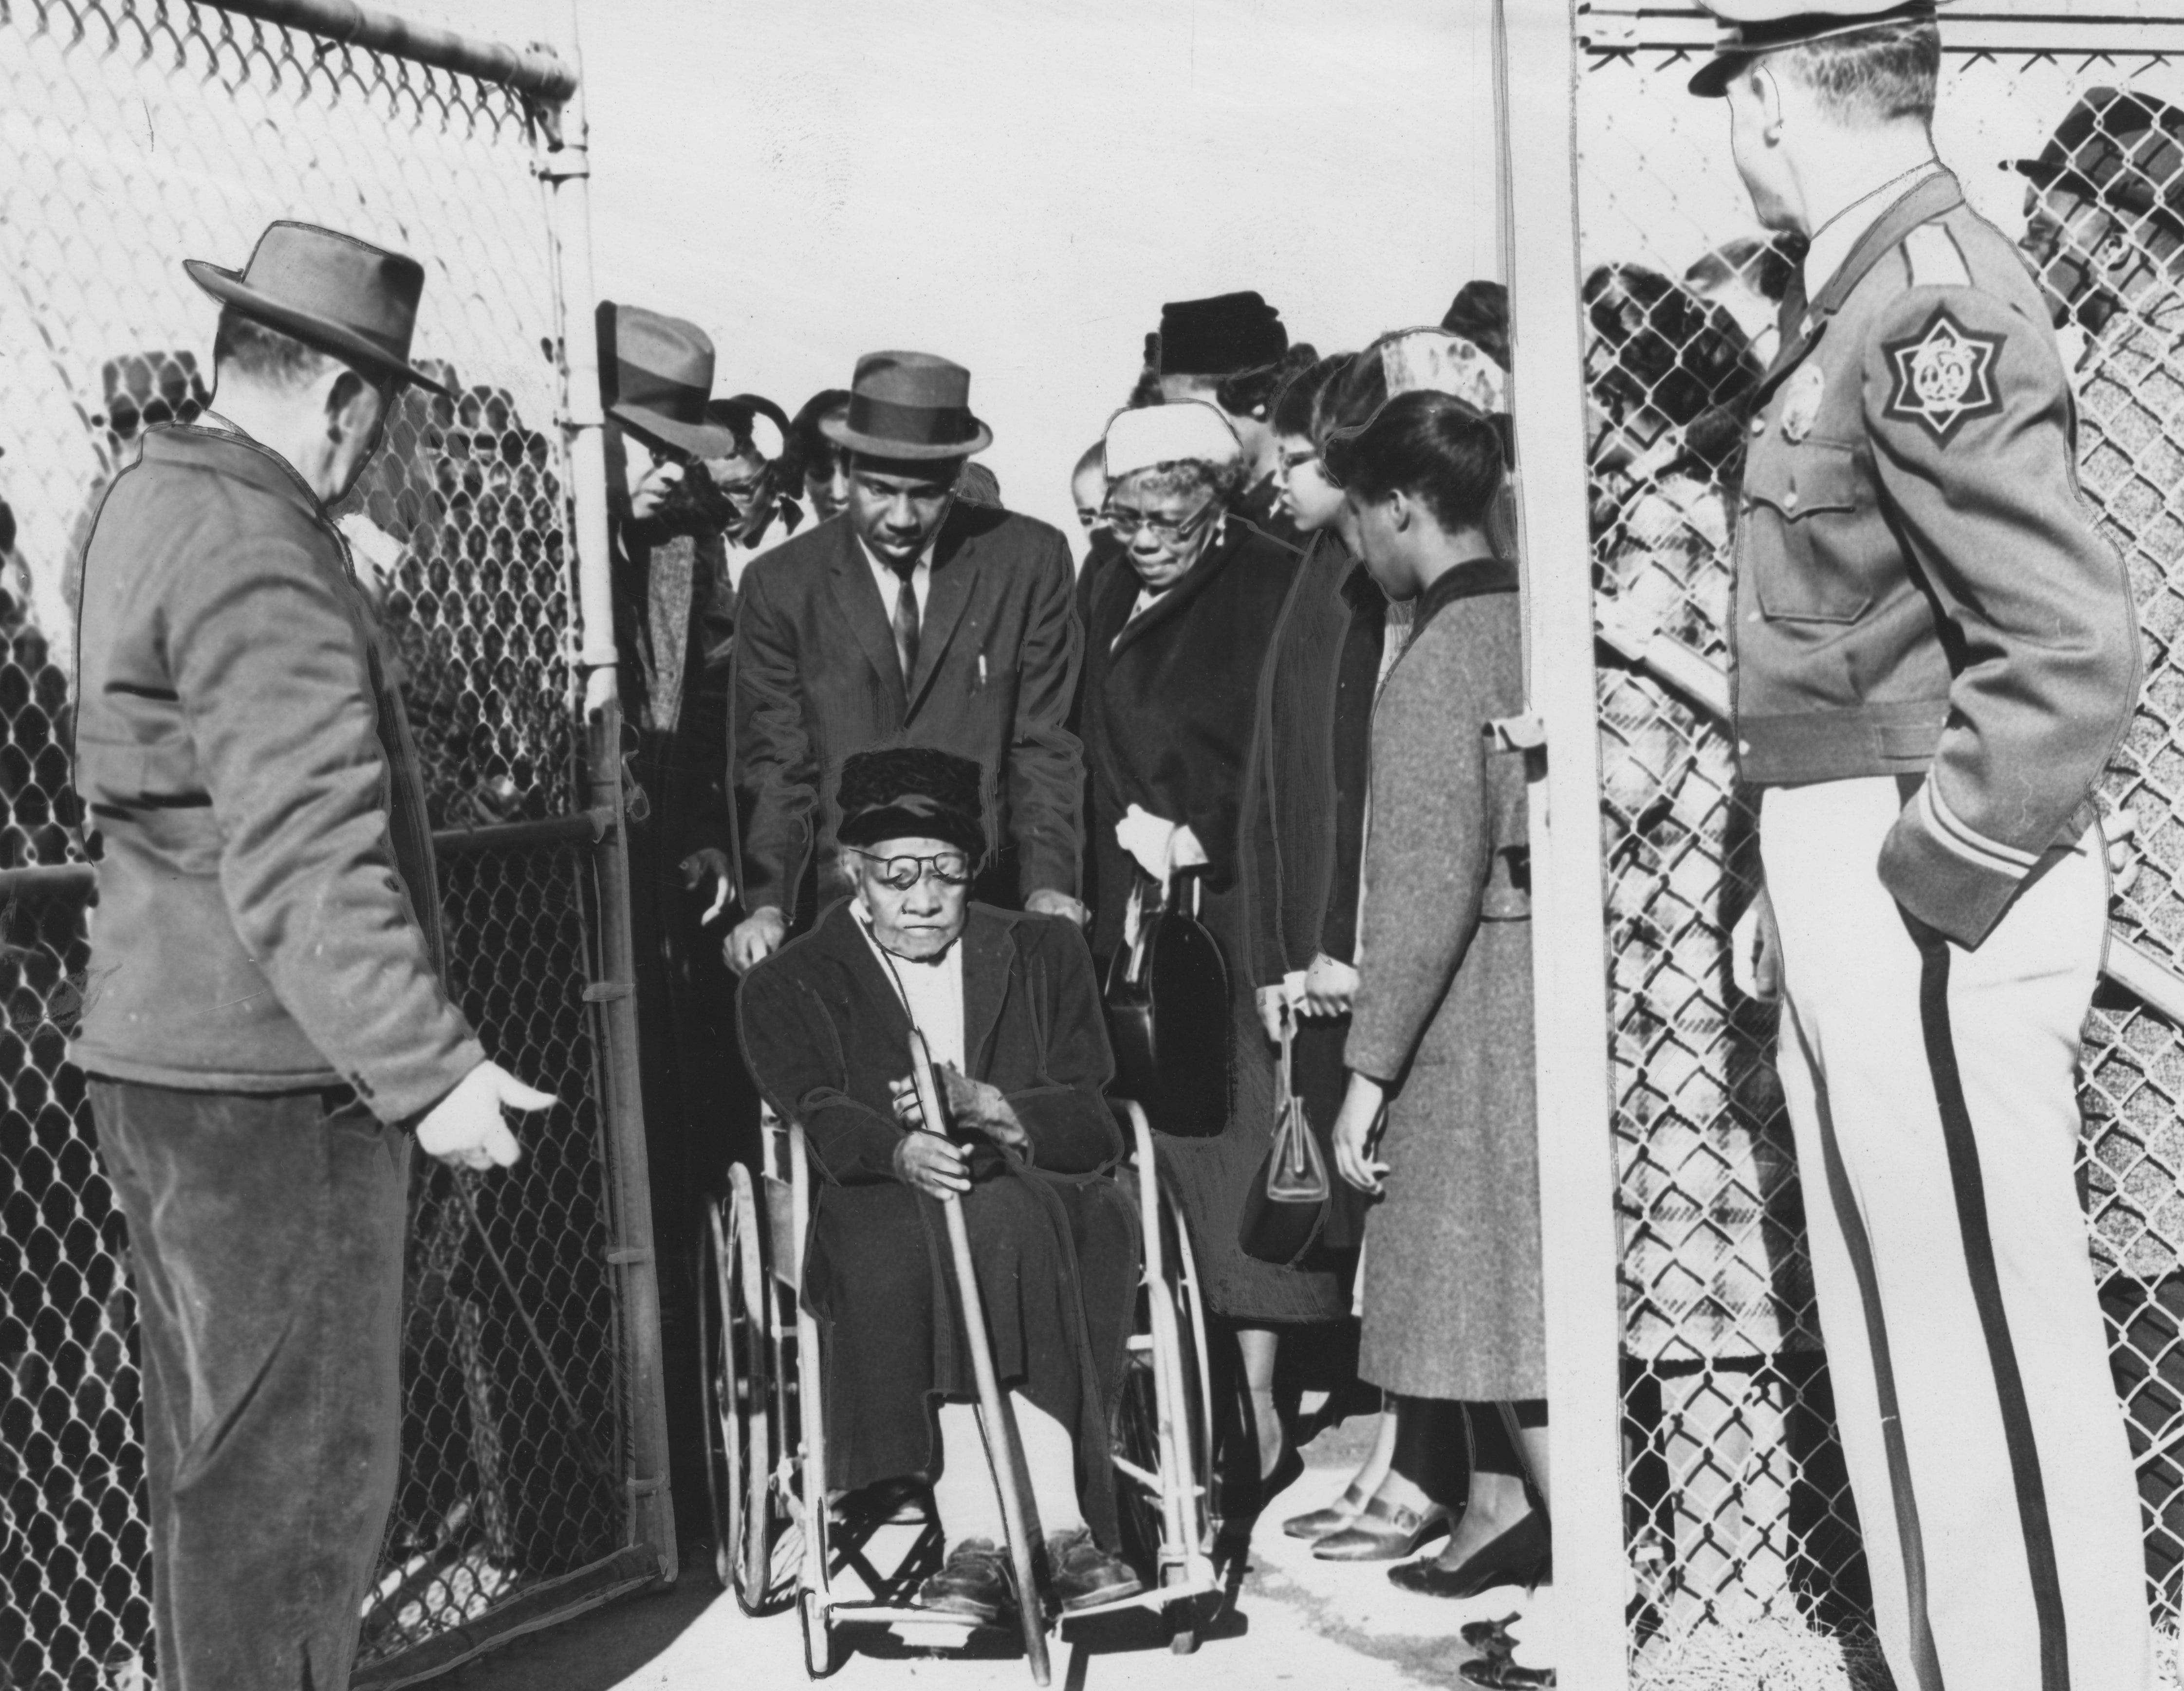 Mrs Mary Gill, proud 95-year-old great-grandmother of John A Gaines of the Friendship Nine imprisoned in the Rock Hill sit-ins, enters the prison gate in a wheelchair to visit the youth, South Carolina, February 5, 1961.